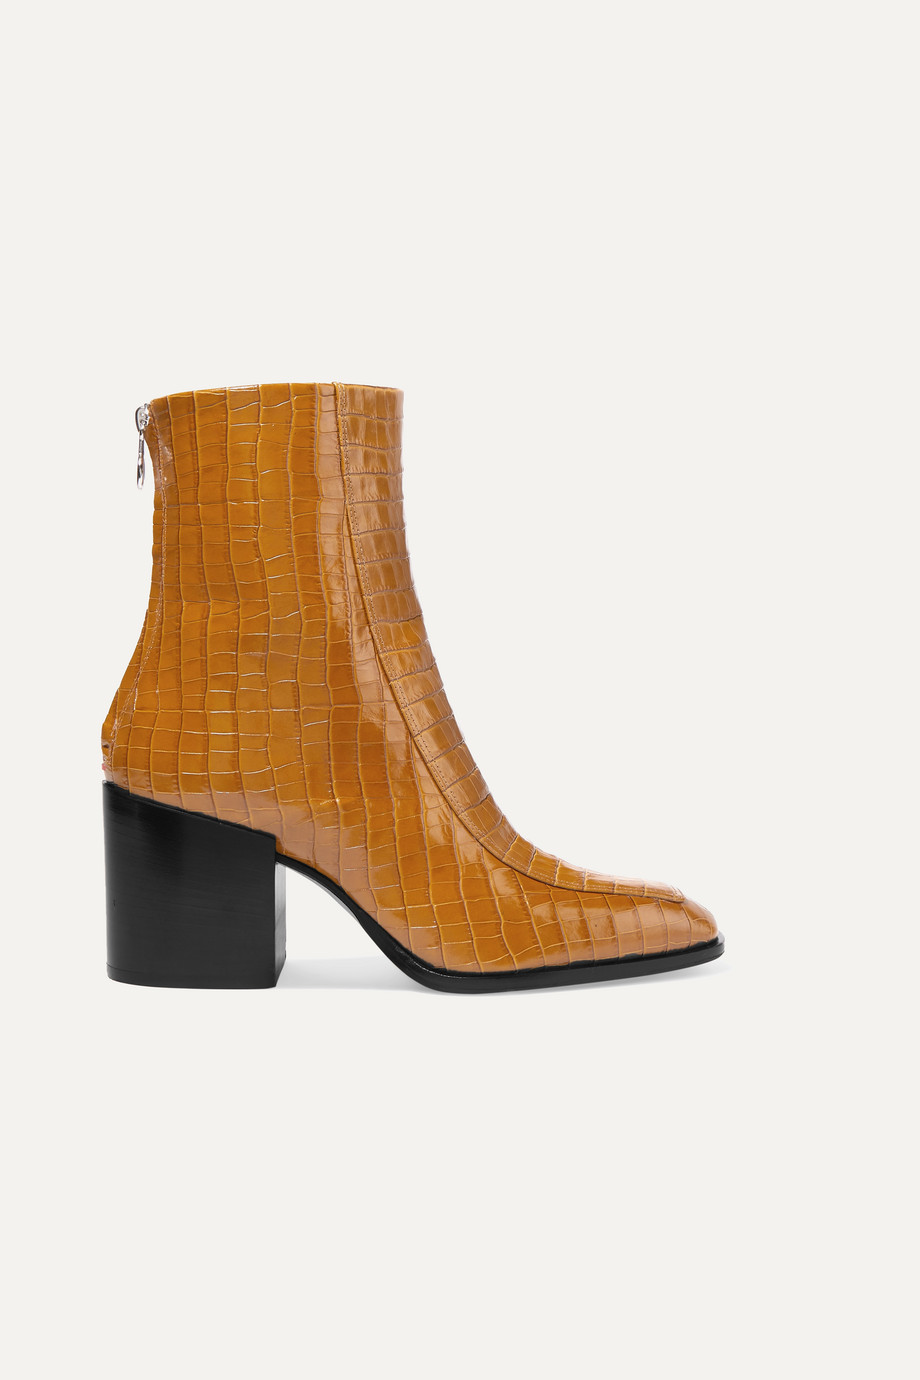 aeyde Lidia glossed croc-effect leather ankle boots